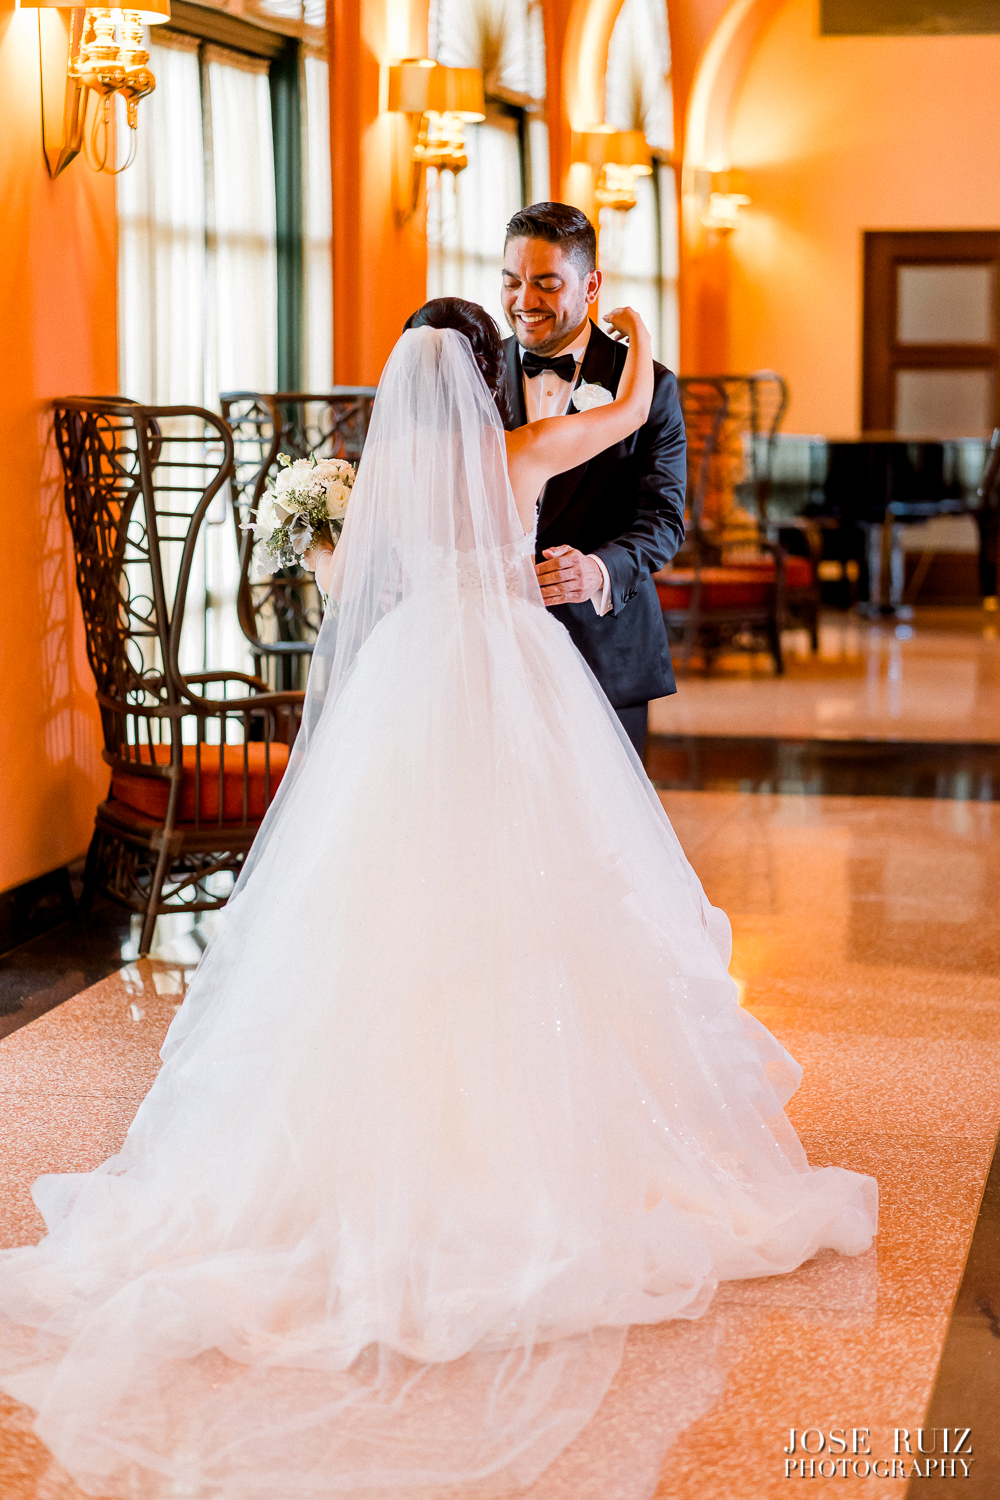 Jose Ruiz Photography- Madalyn & Joel-0031.jpg